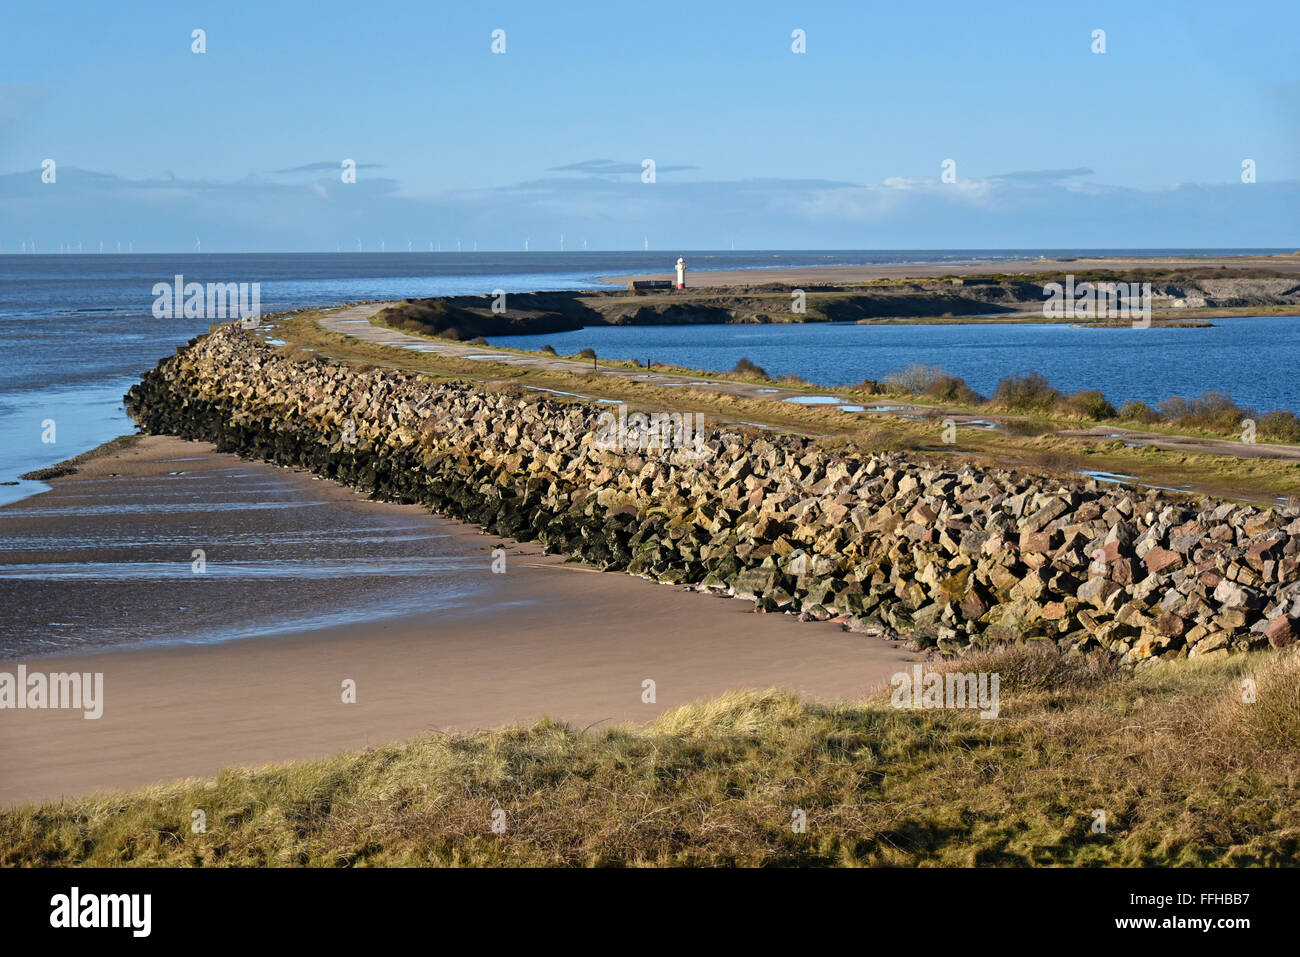 the-outer-barrier-hodbarrow-millom-cumbria-england-united-kingdom-FFHBB7.jpg